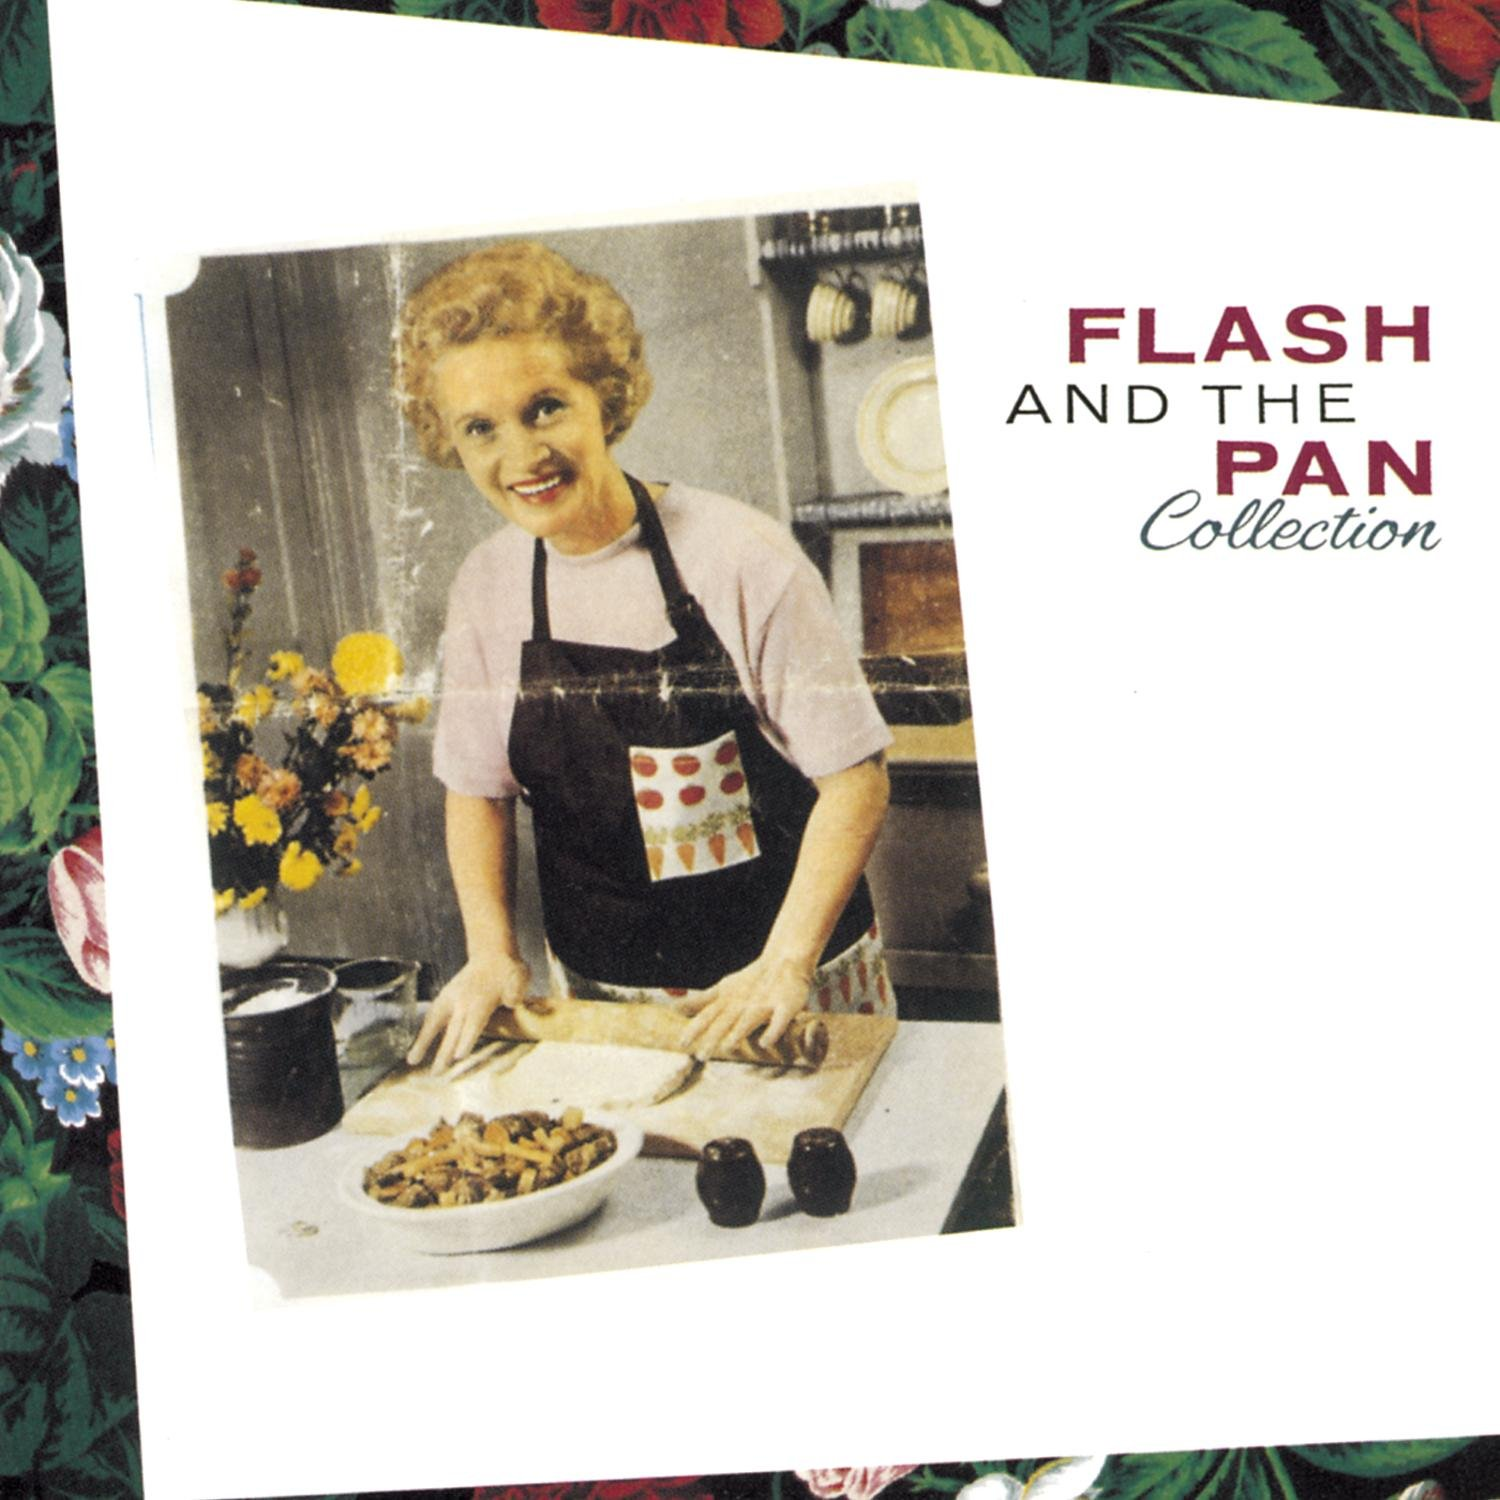 The Very popular shop Flash And Collection Pan